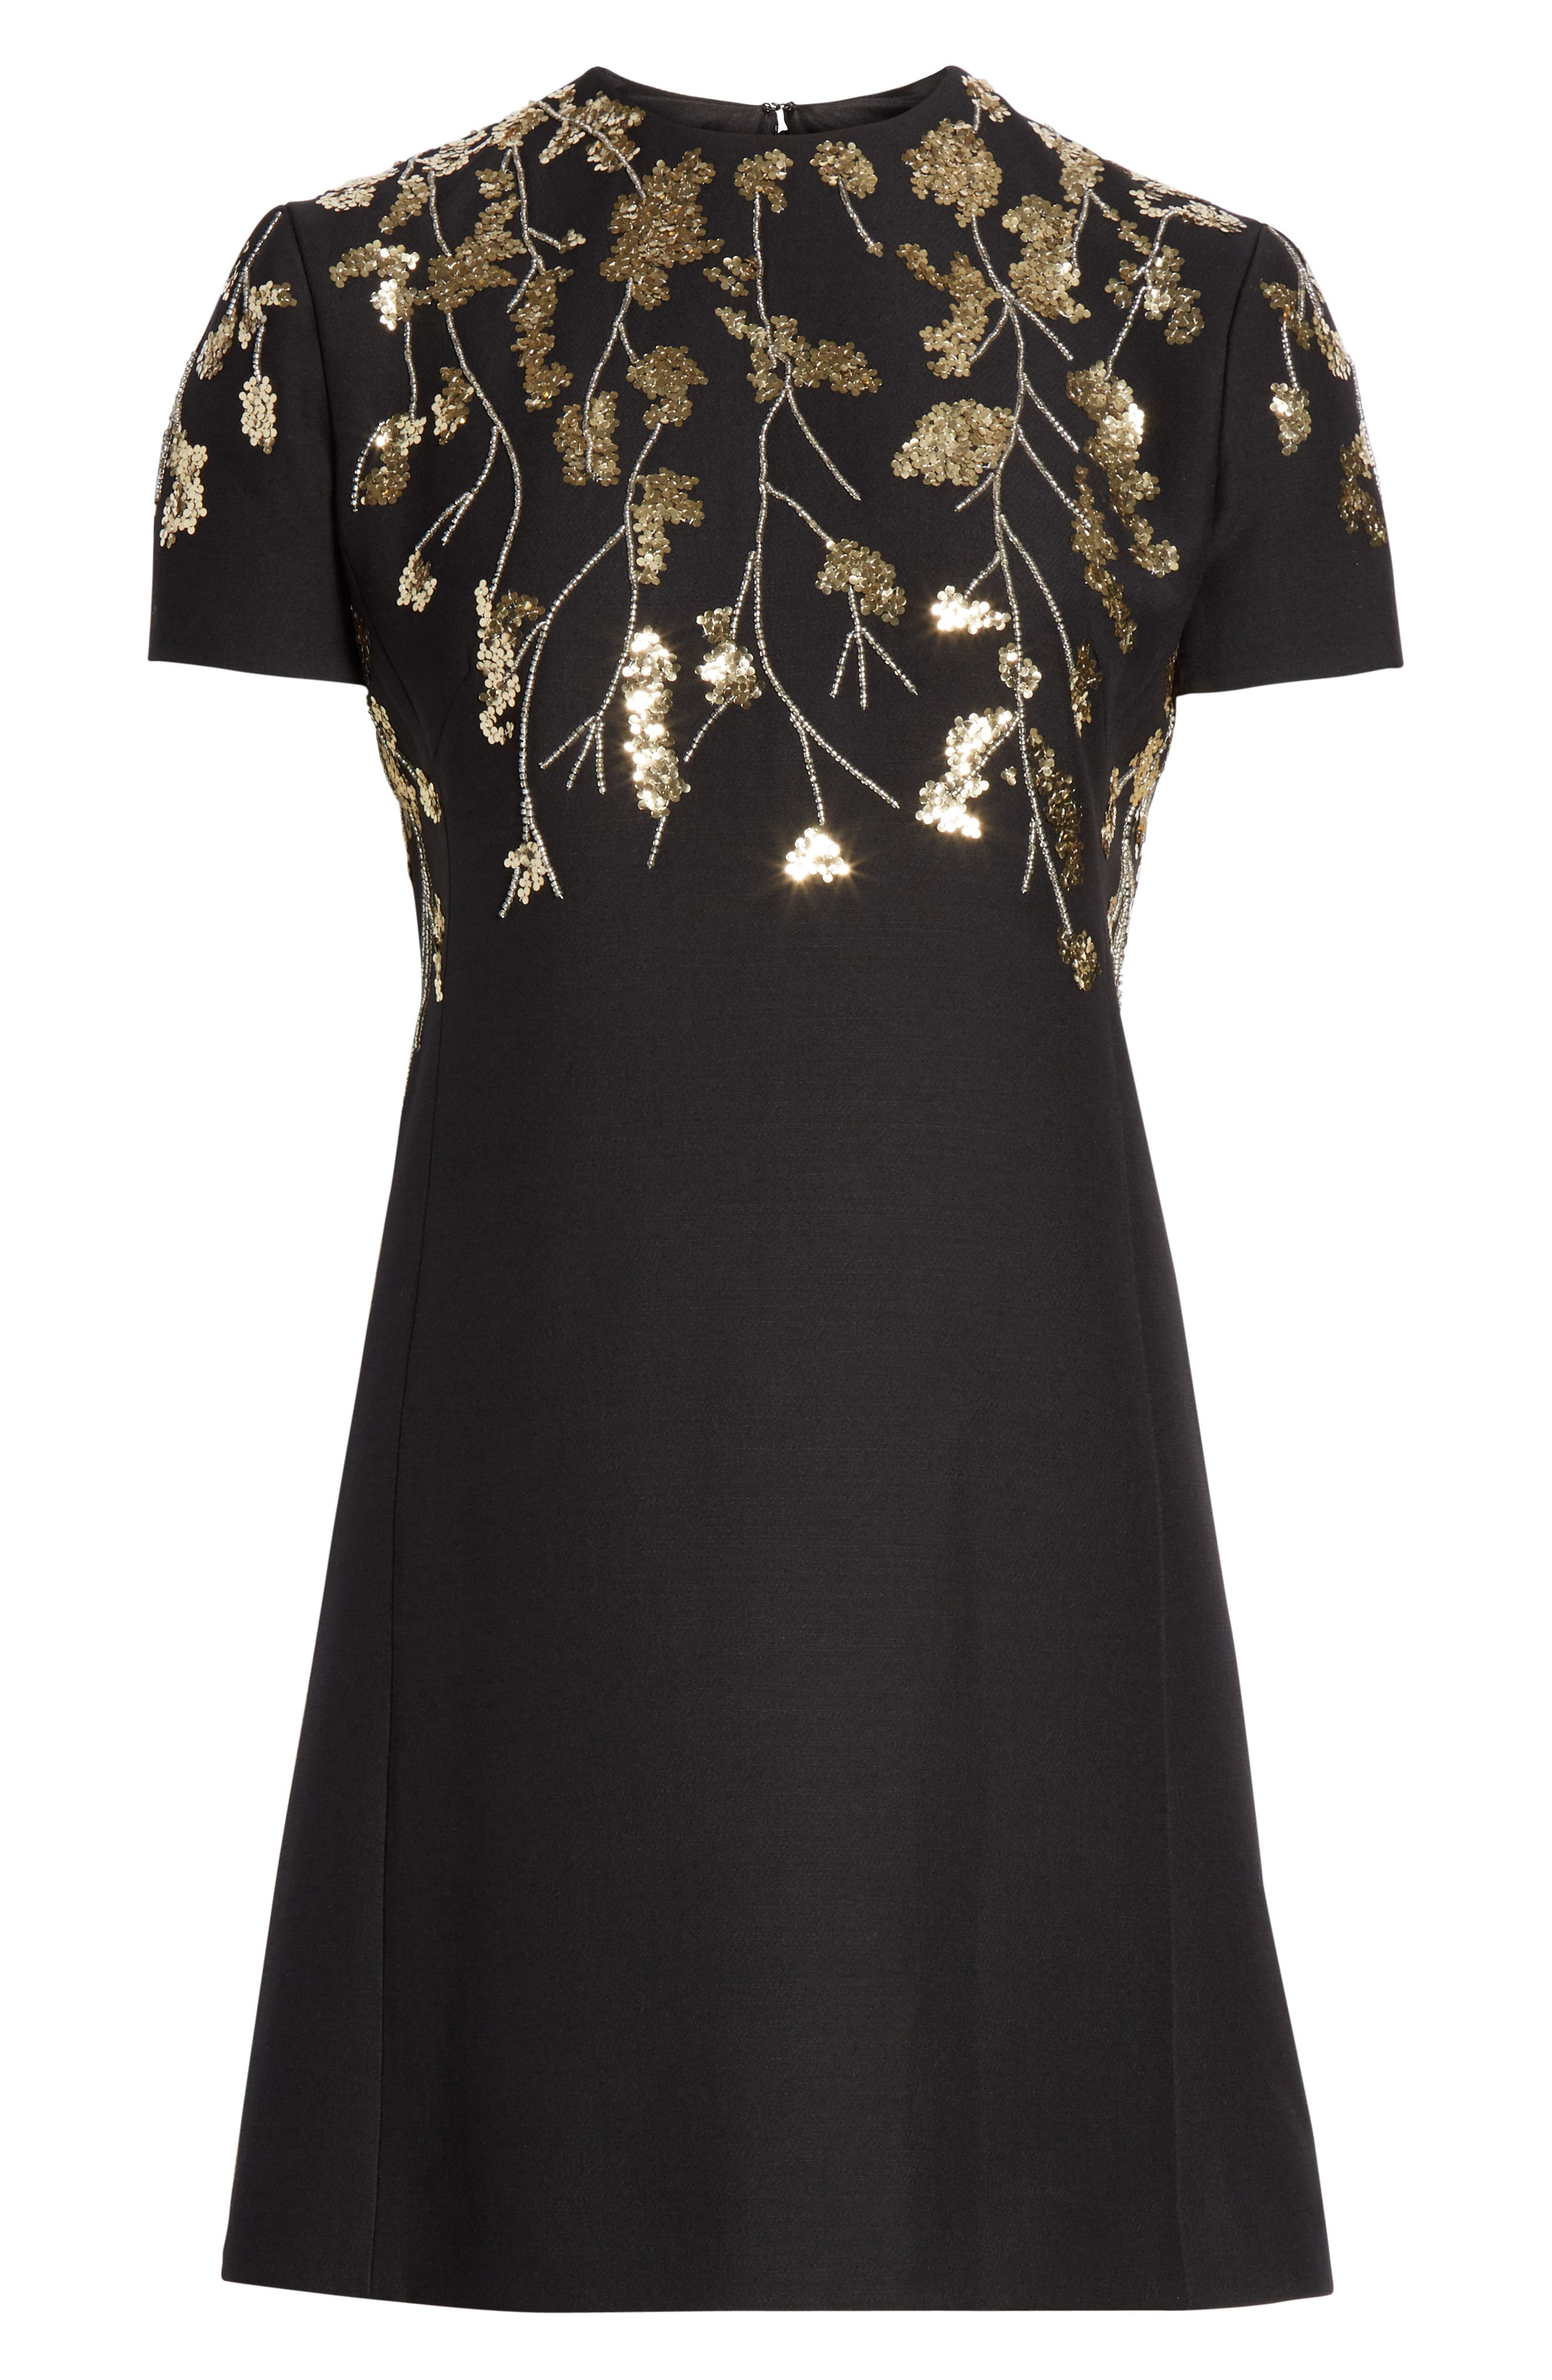 VALENTINO, Floral Embroidered Crepe Couture Dress, Alternate thumbnail 7, color, BLACK GOLD